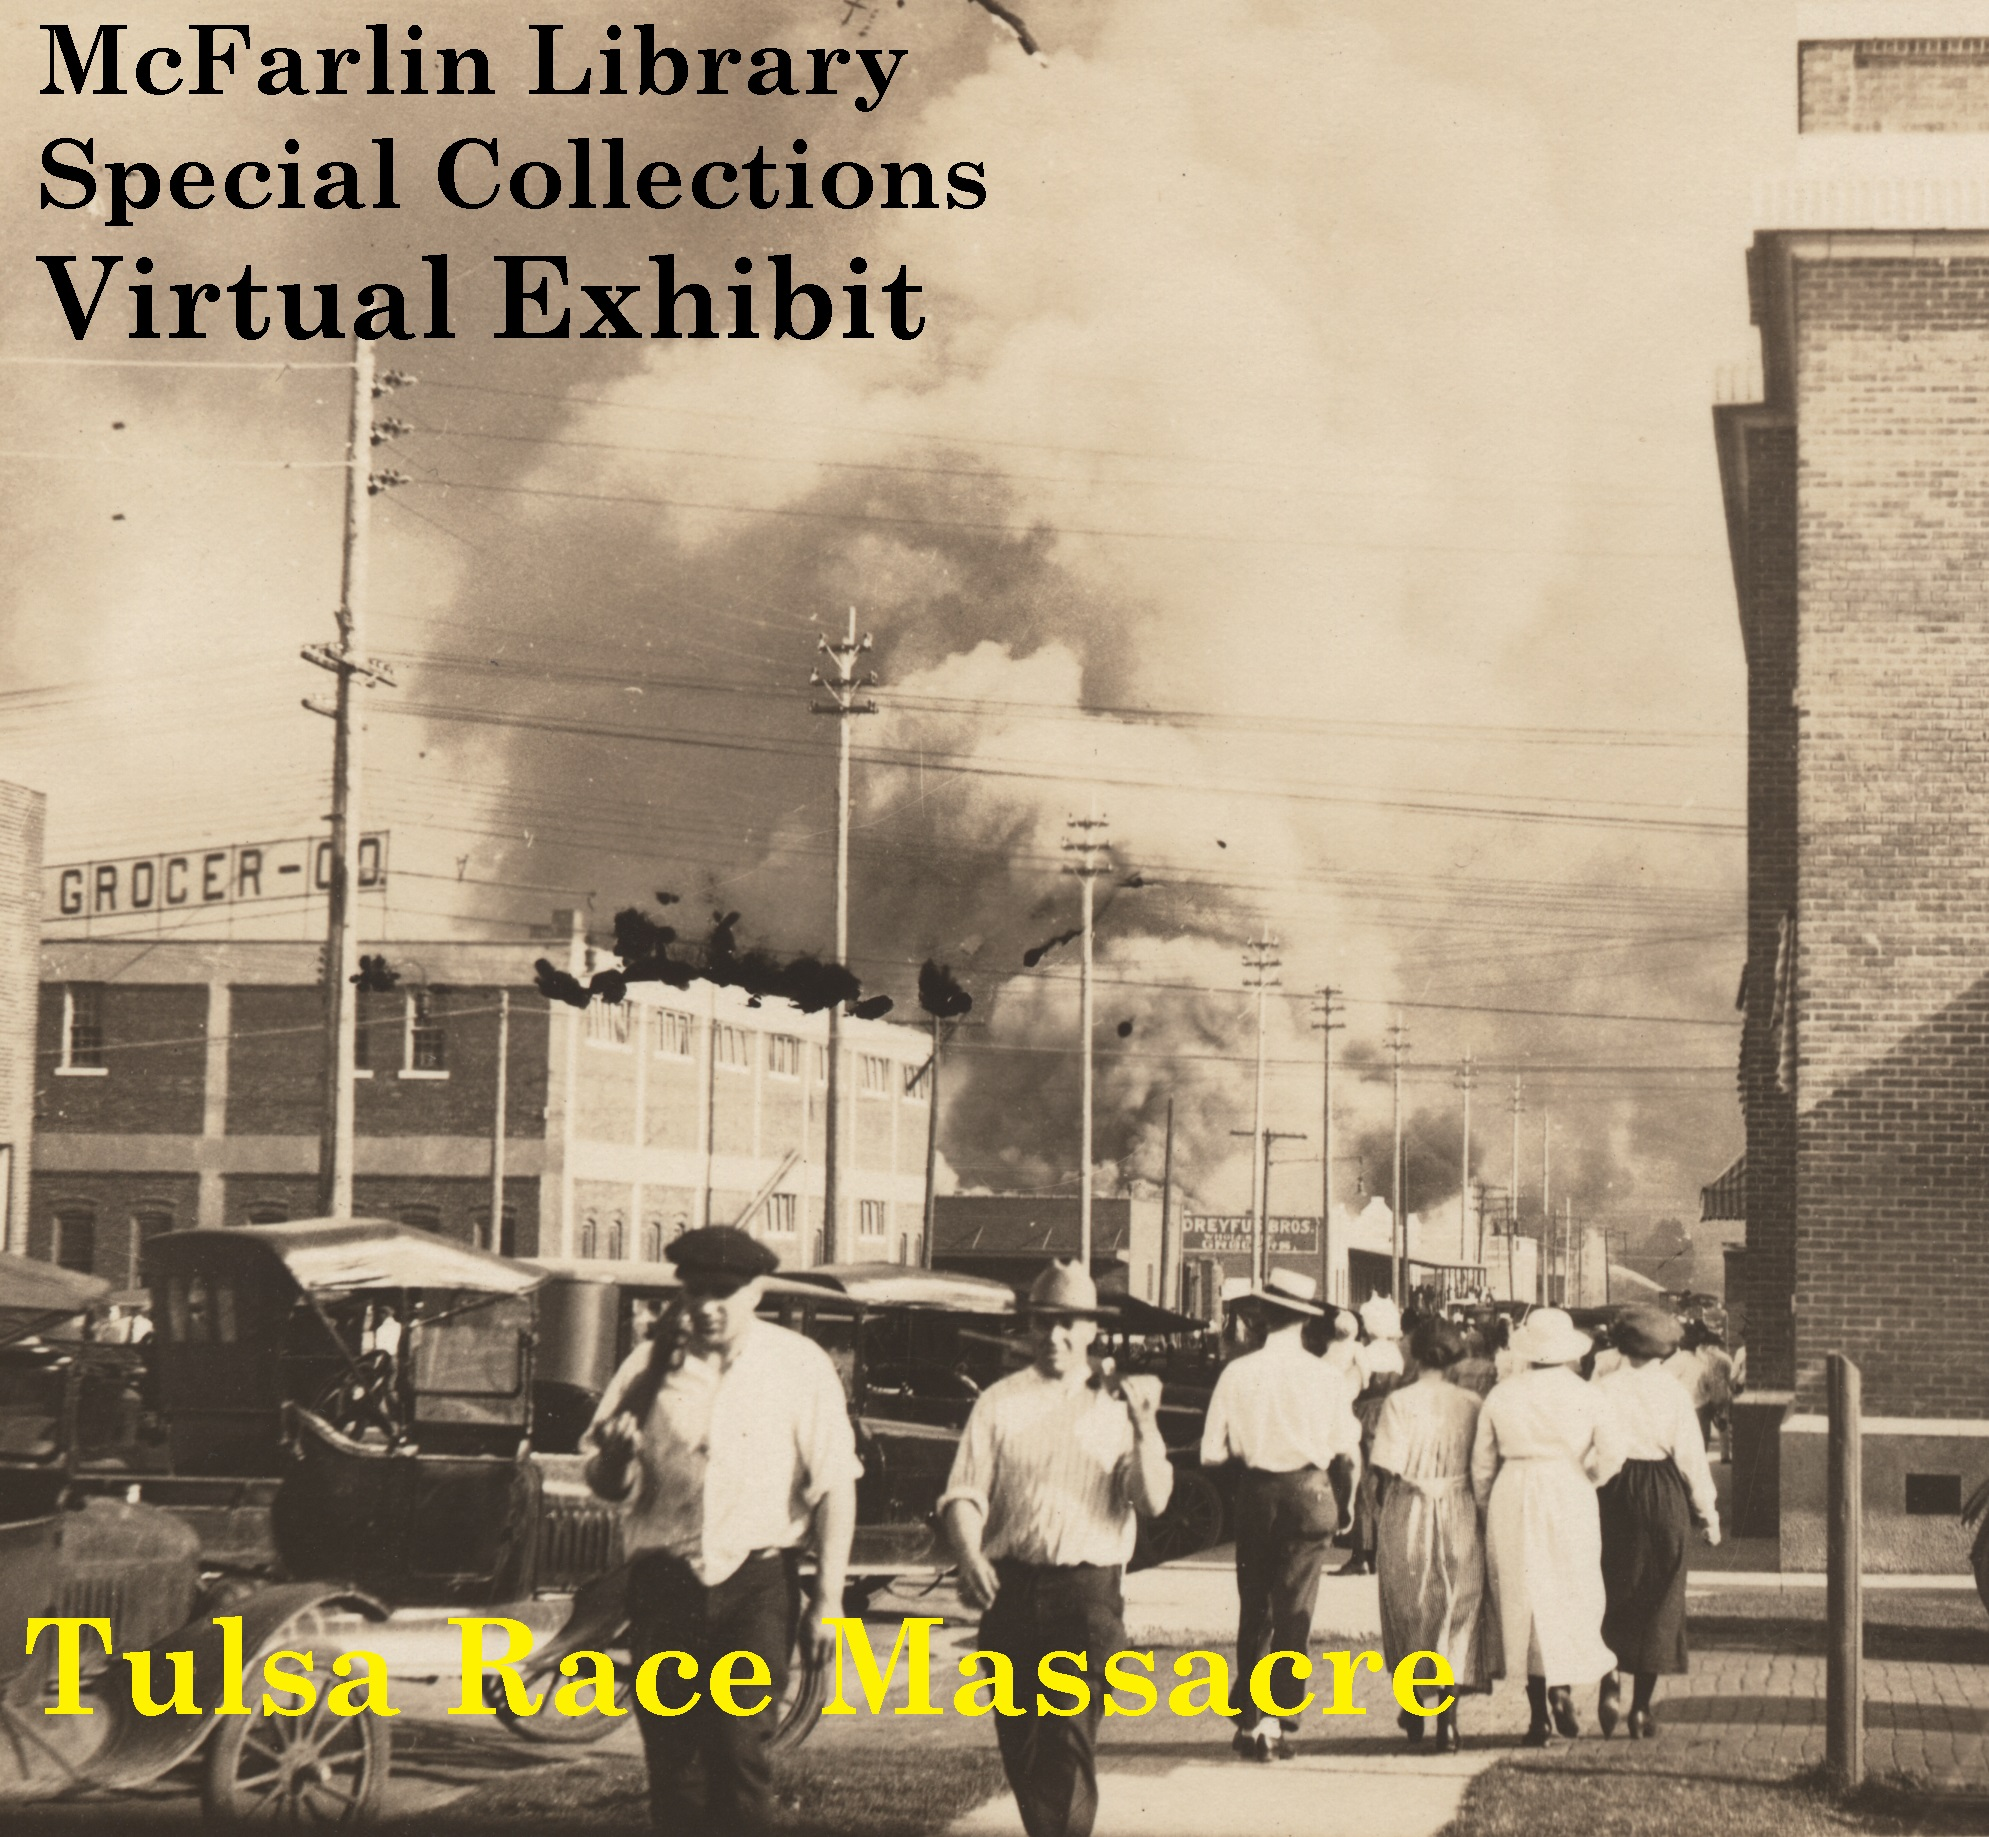 Tulsa Race Massacre Exhibit